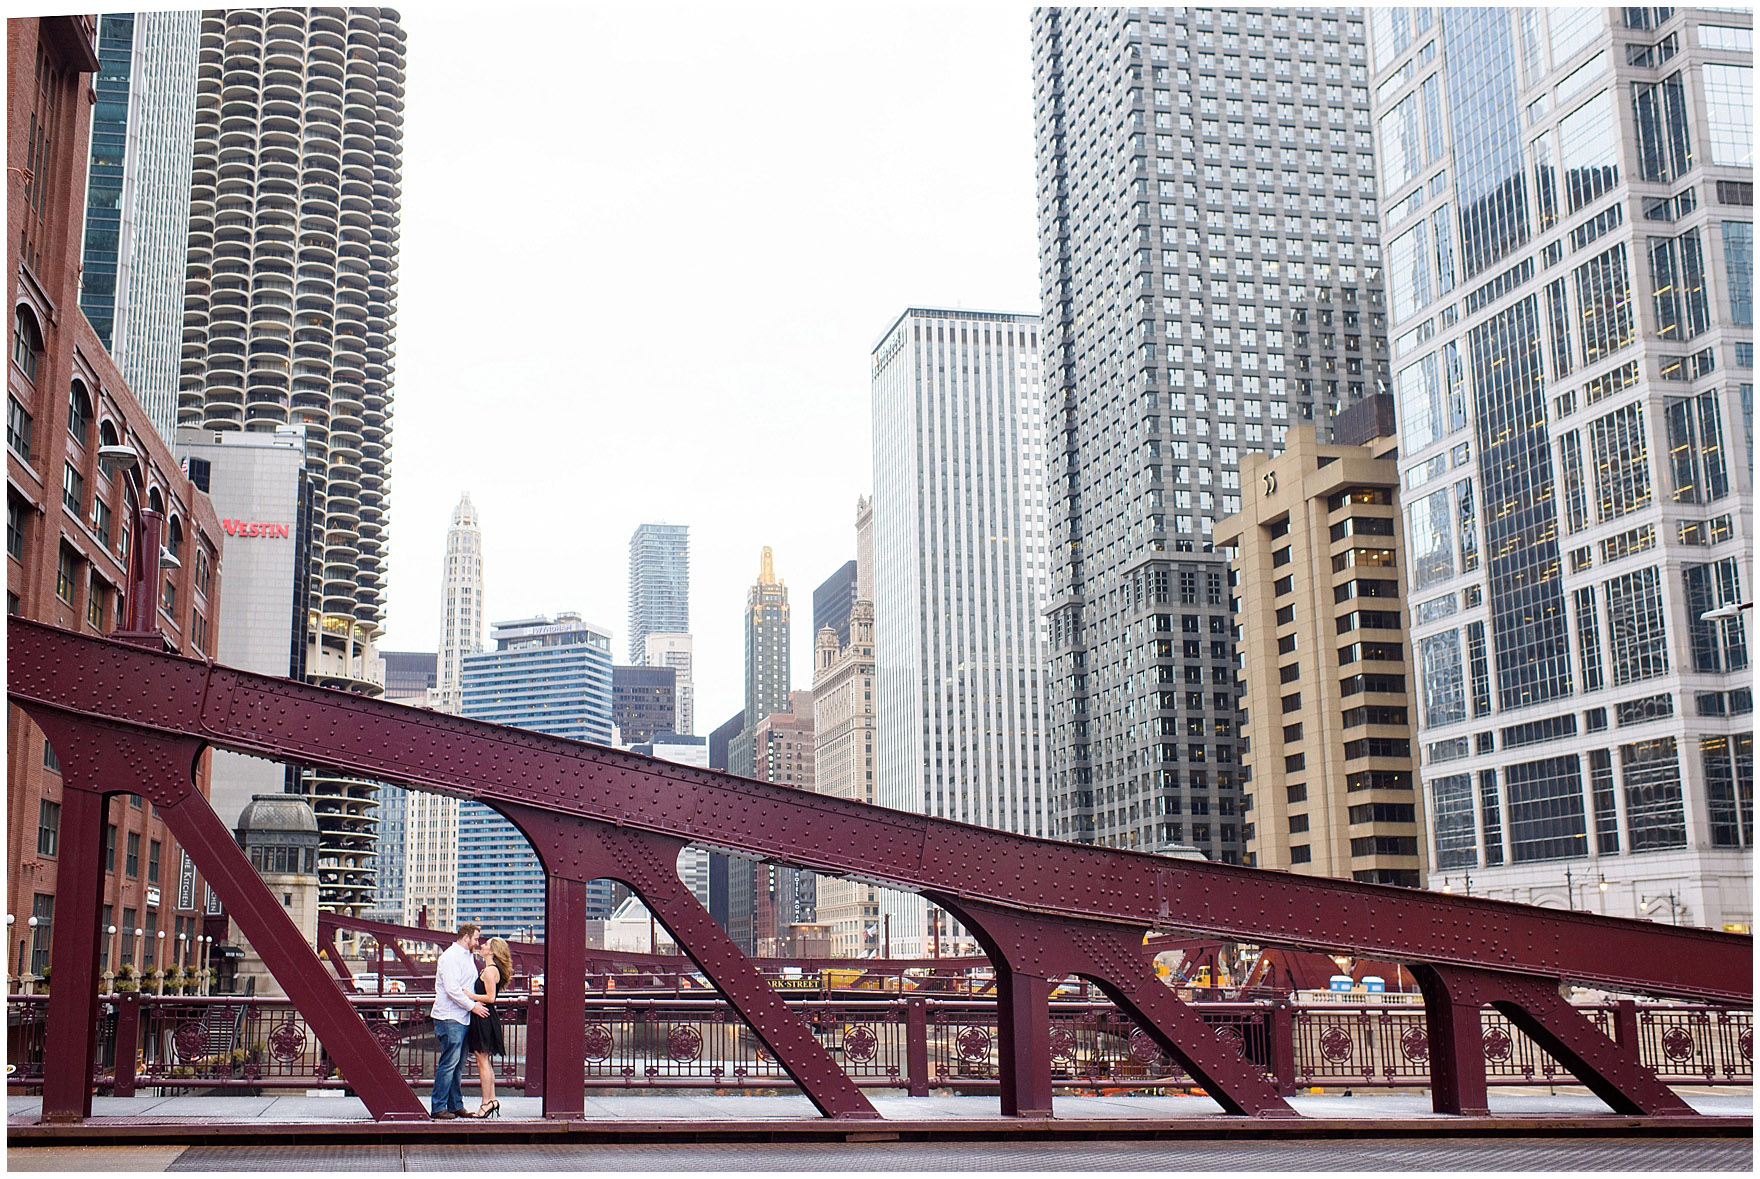 A couple walks on the LaSalle Street bridge during a downtown Chicago city engagement photography session.